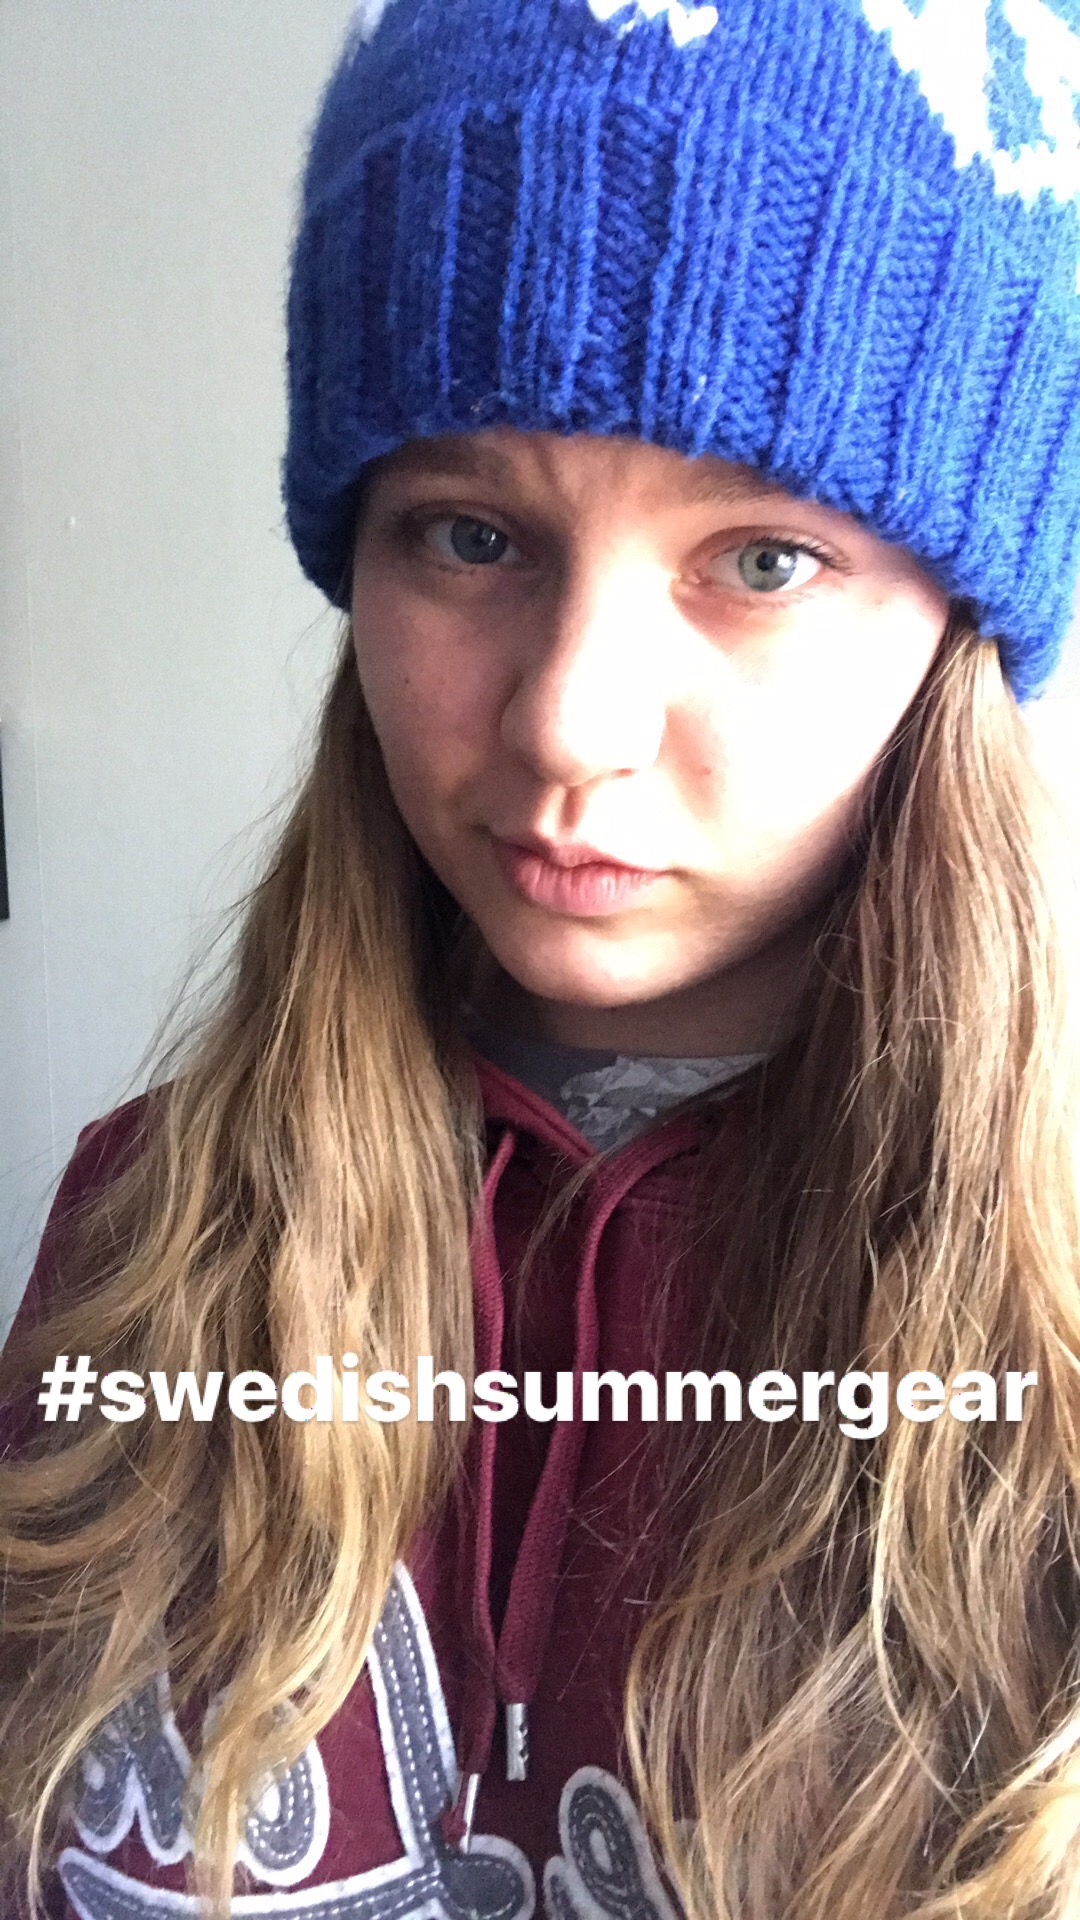 Thanks for letting borrow your hat and two sweatshirts NIklas. Can't believe forgot to bring my summertime winter clothes.